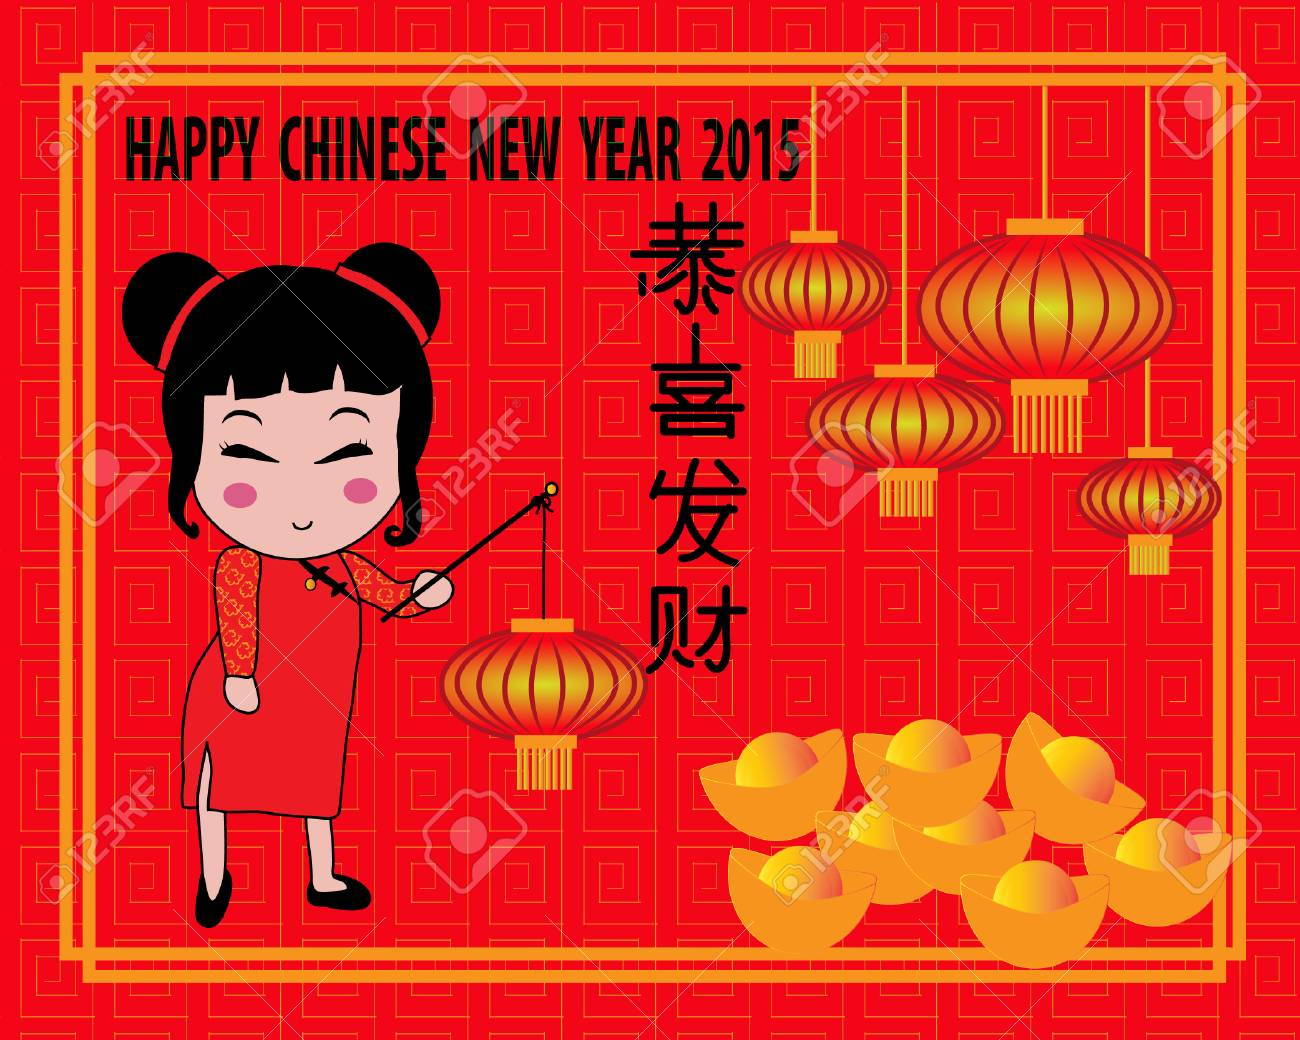 the chinese character chinese new year background the chinese character gong xi fa cai